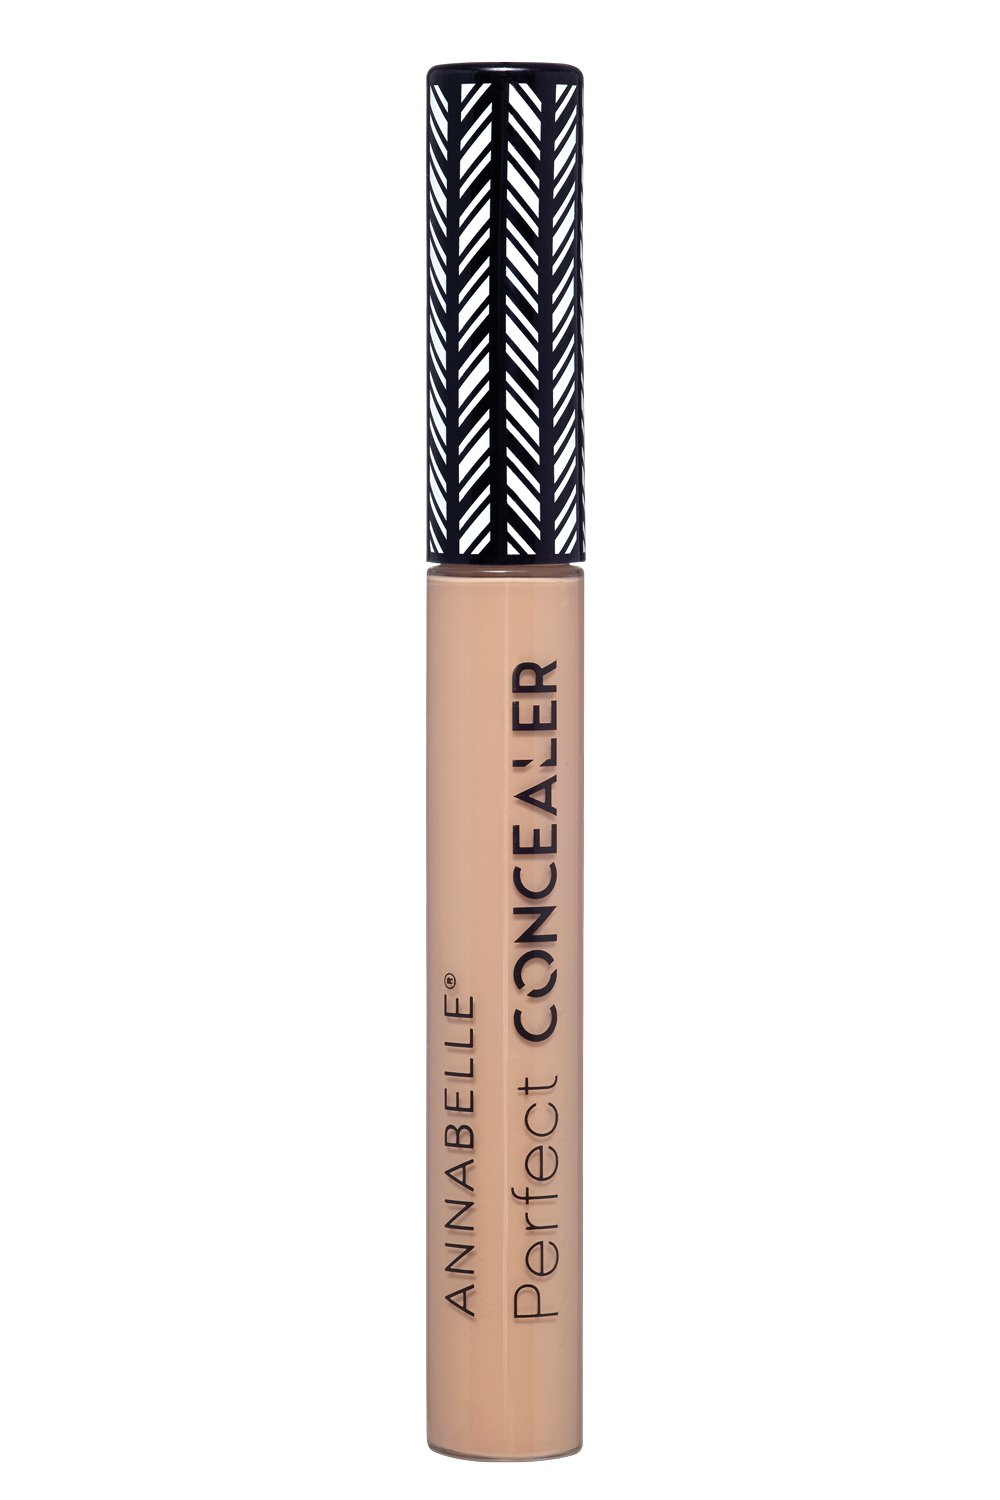 Annabelle Perfect Concealer, Fair, 5.5 mL Groupe Marcelle Inc.